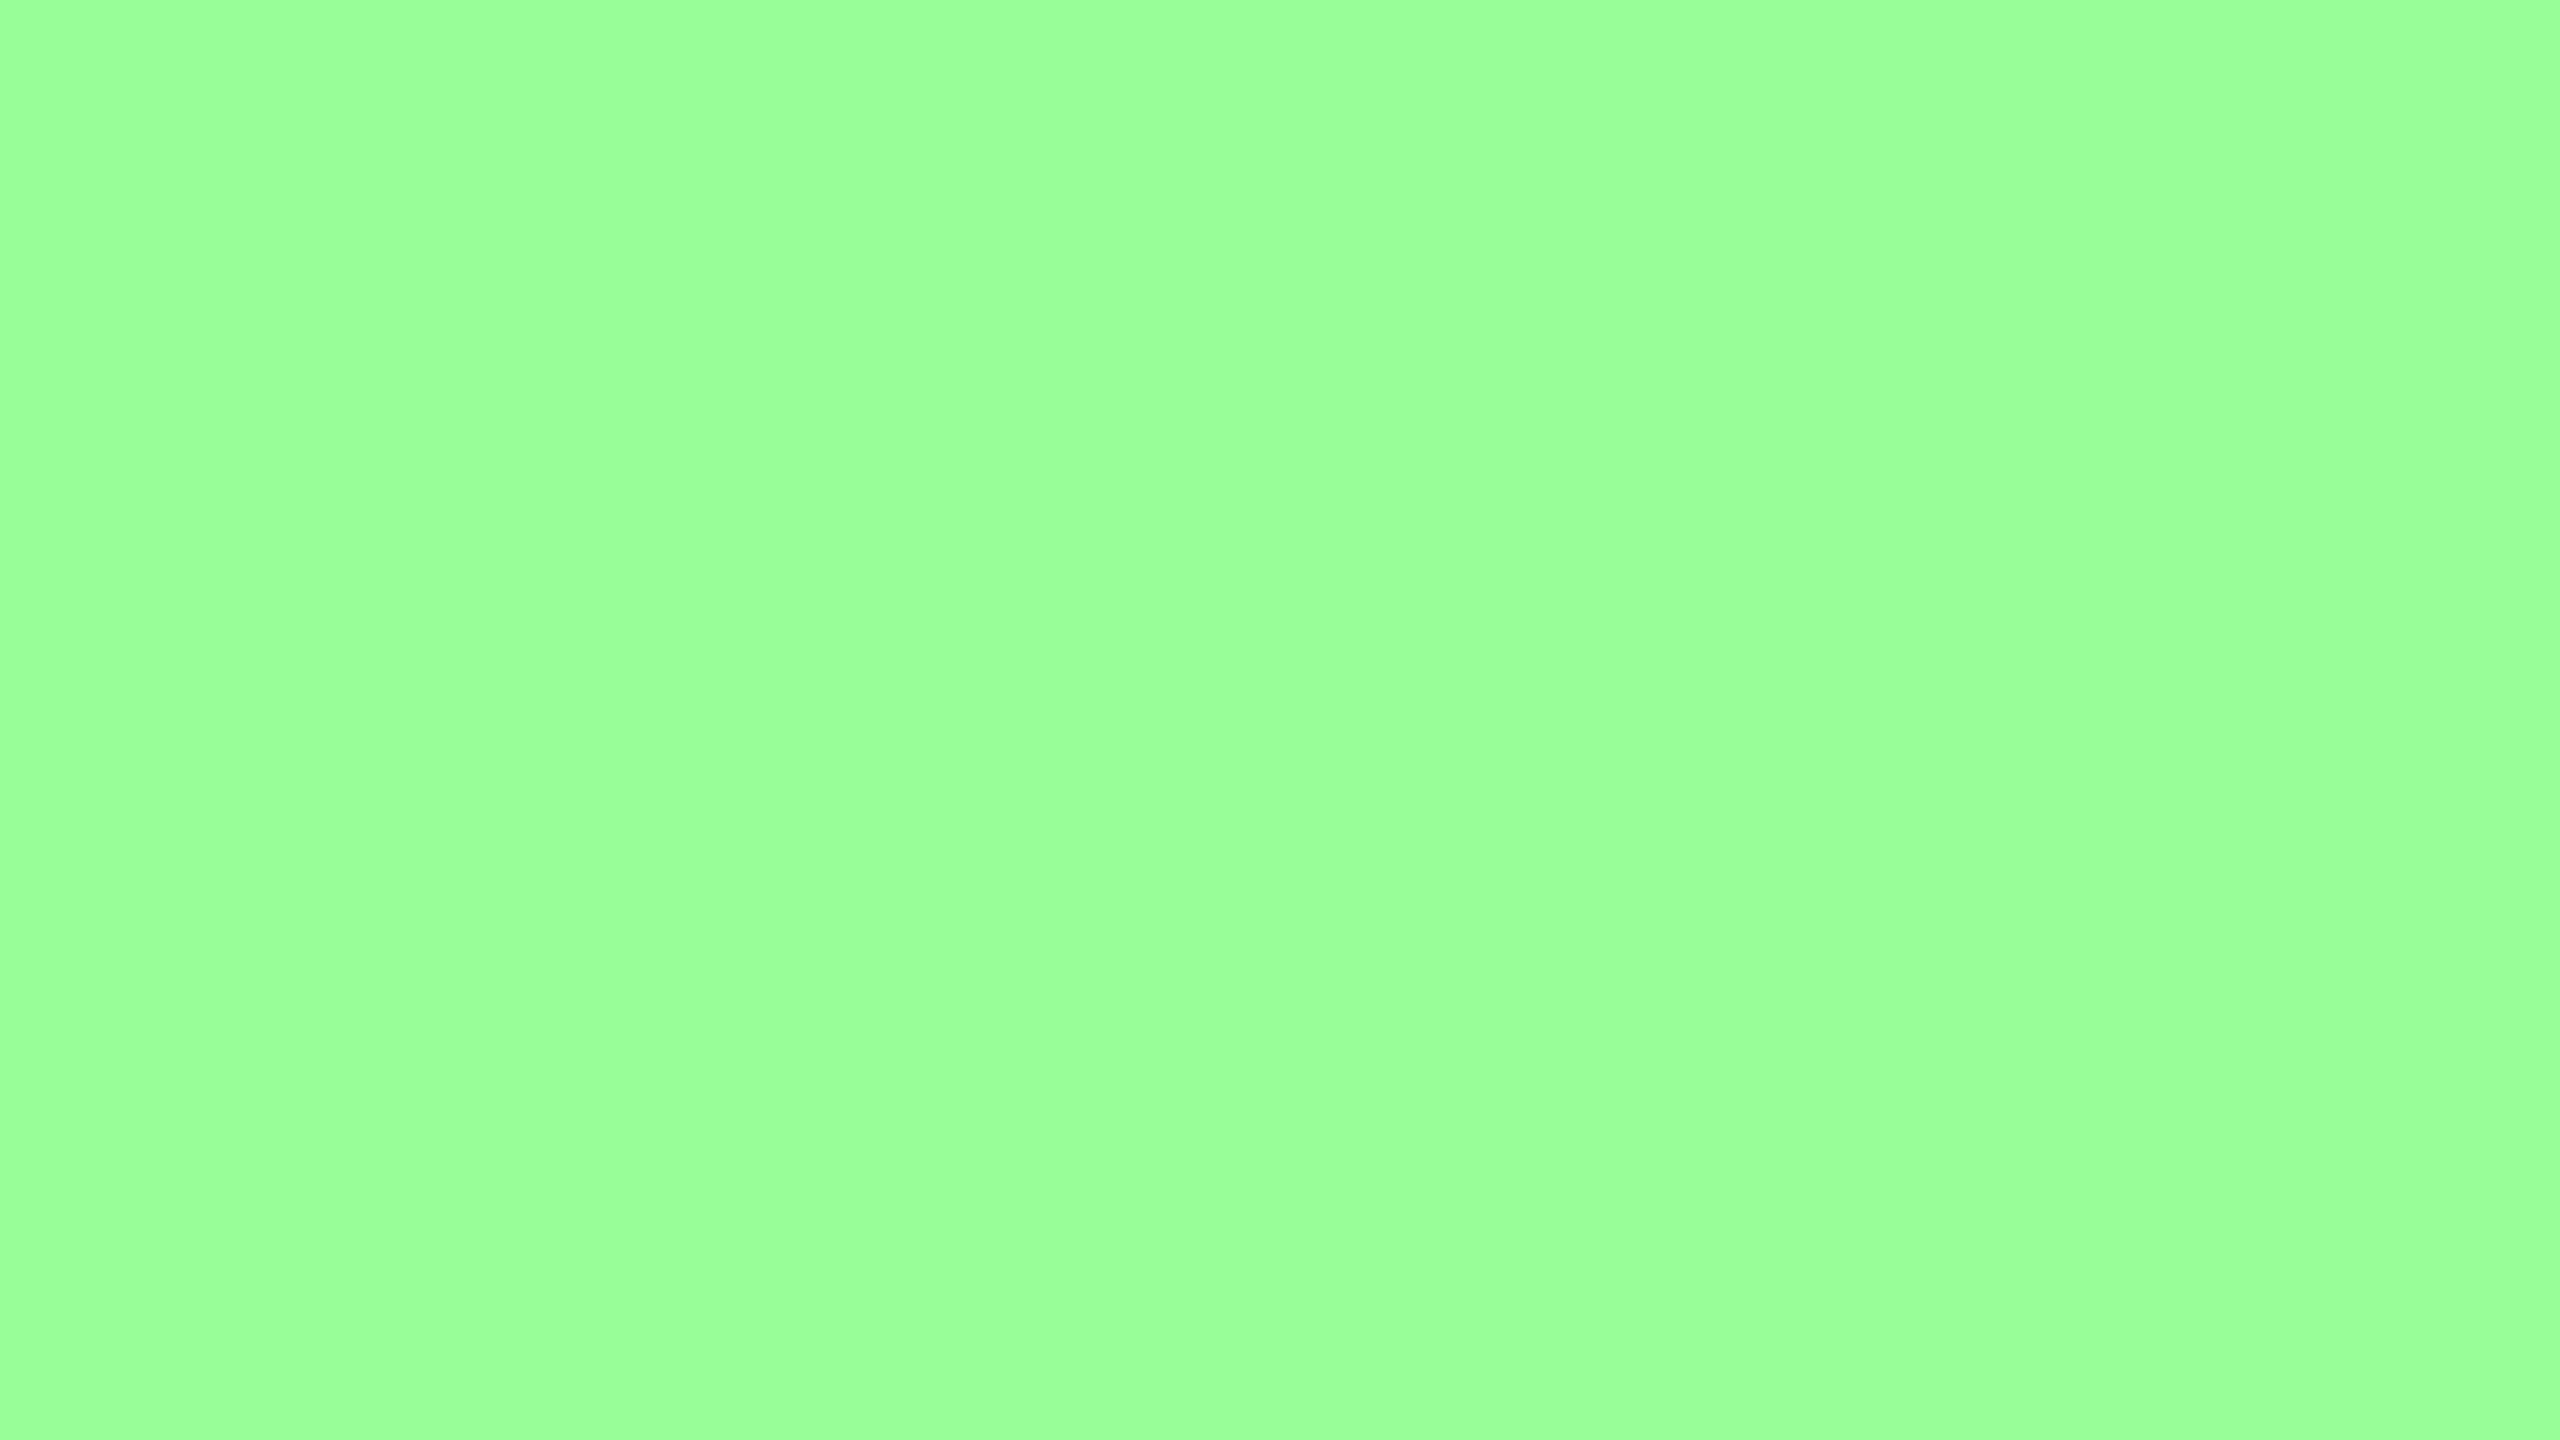 2560x1440 Free  resolution Mint Green solid color background, view and .